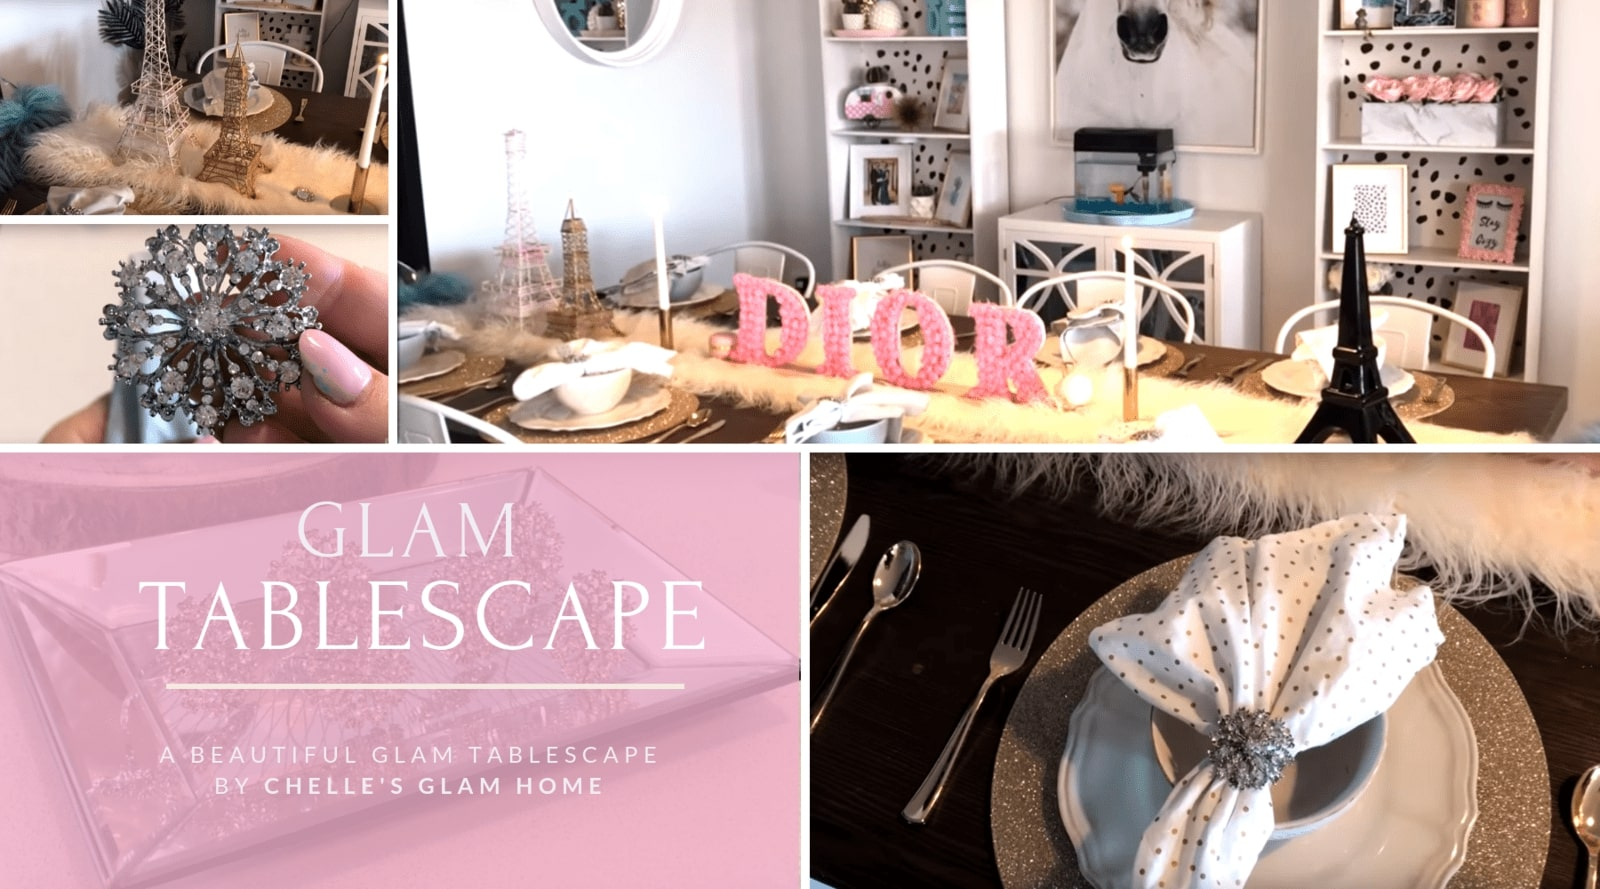 Glam Tablescape by Chelle's Glam Home